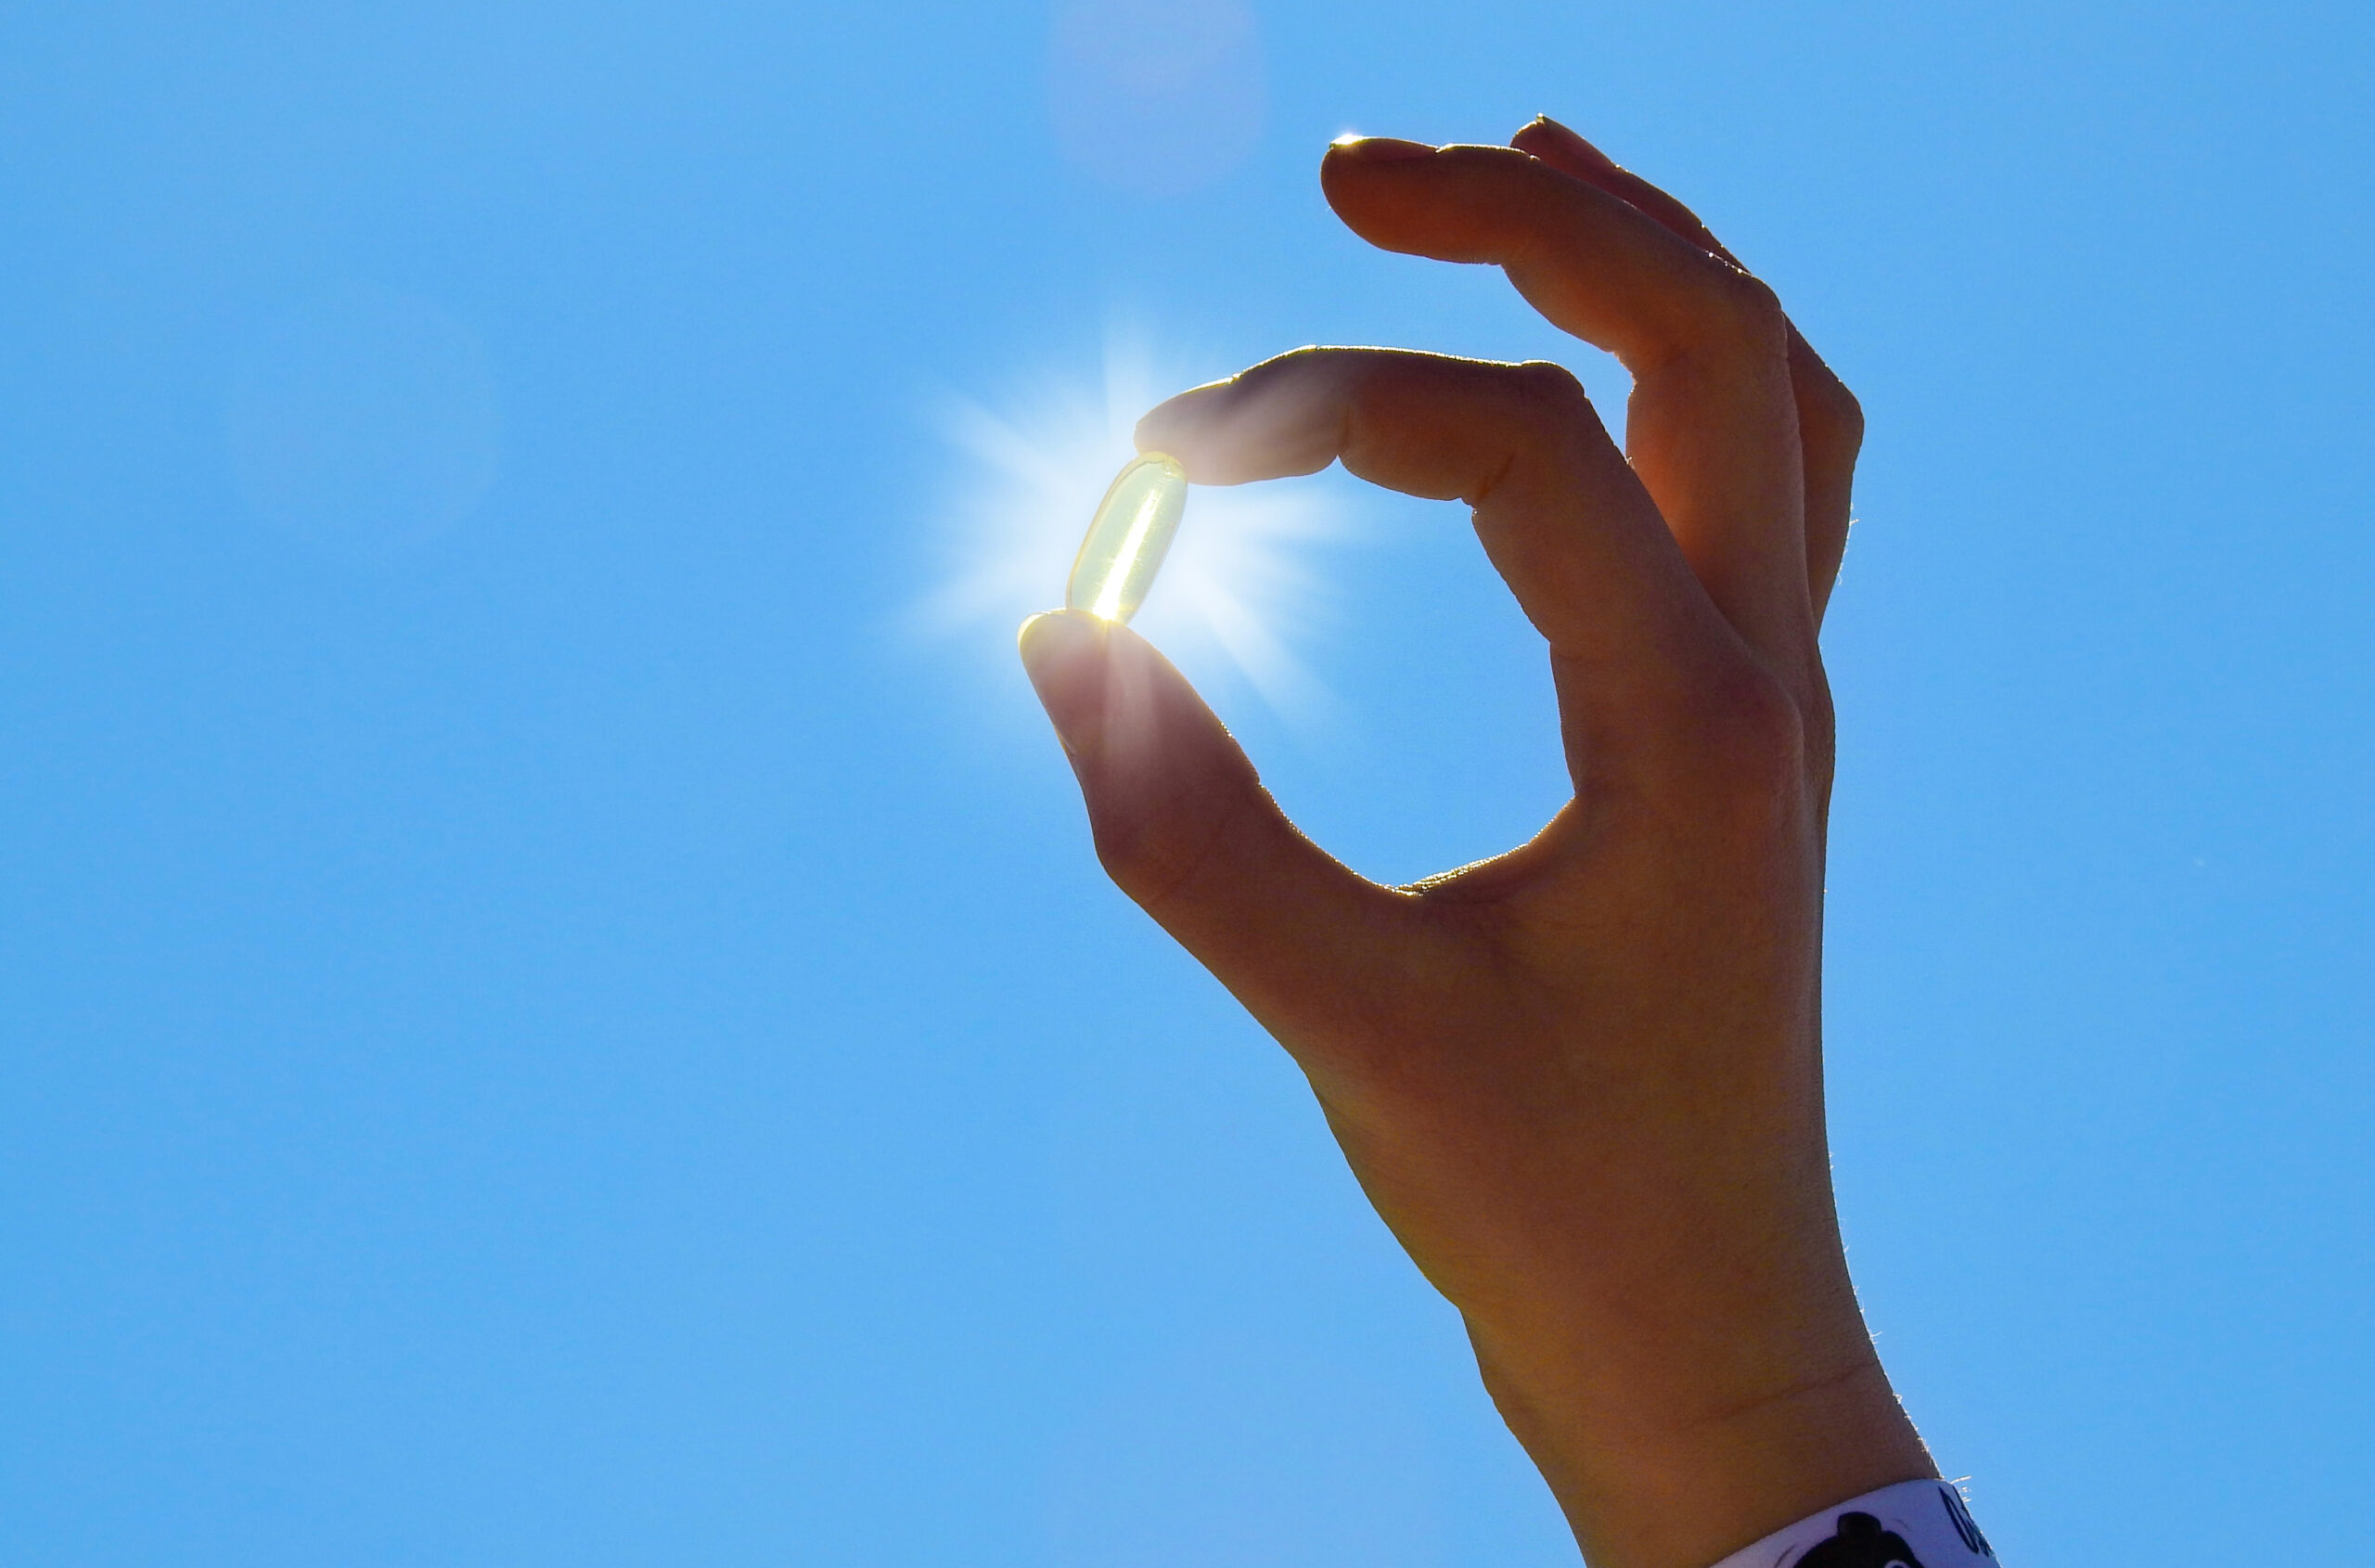 Why aren't we talking more about Vitamin D during this pandemic?